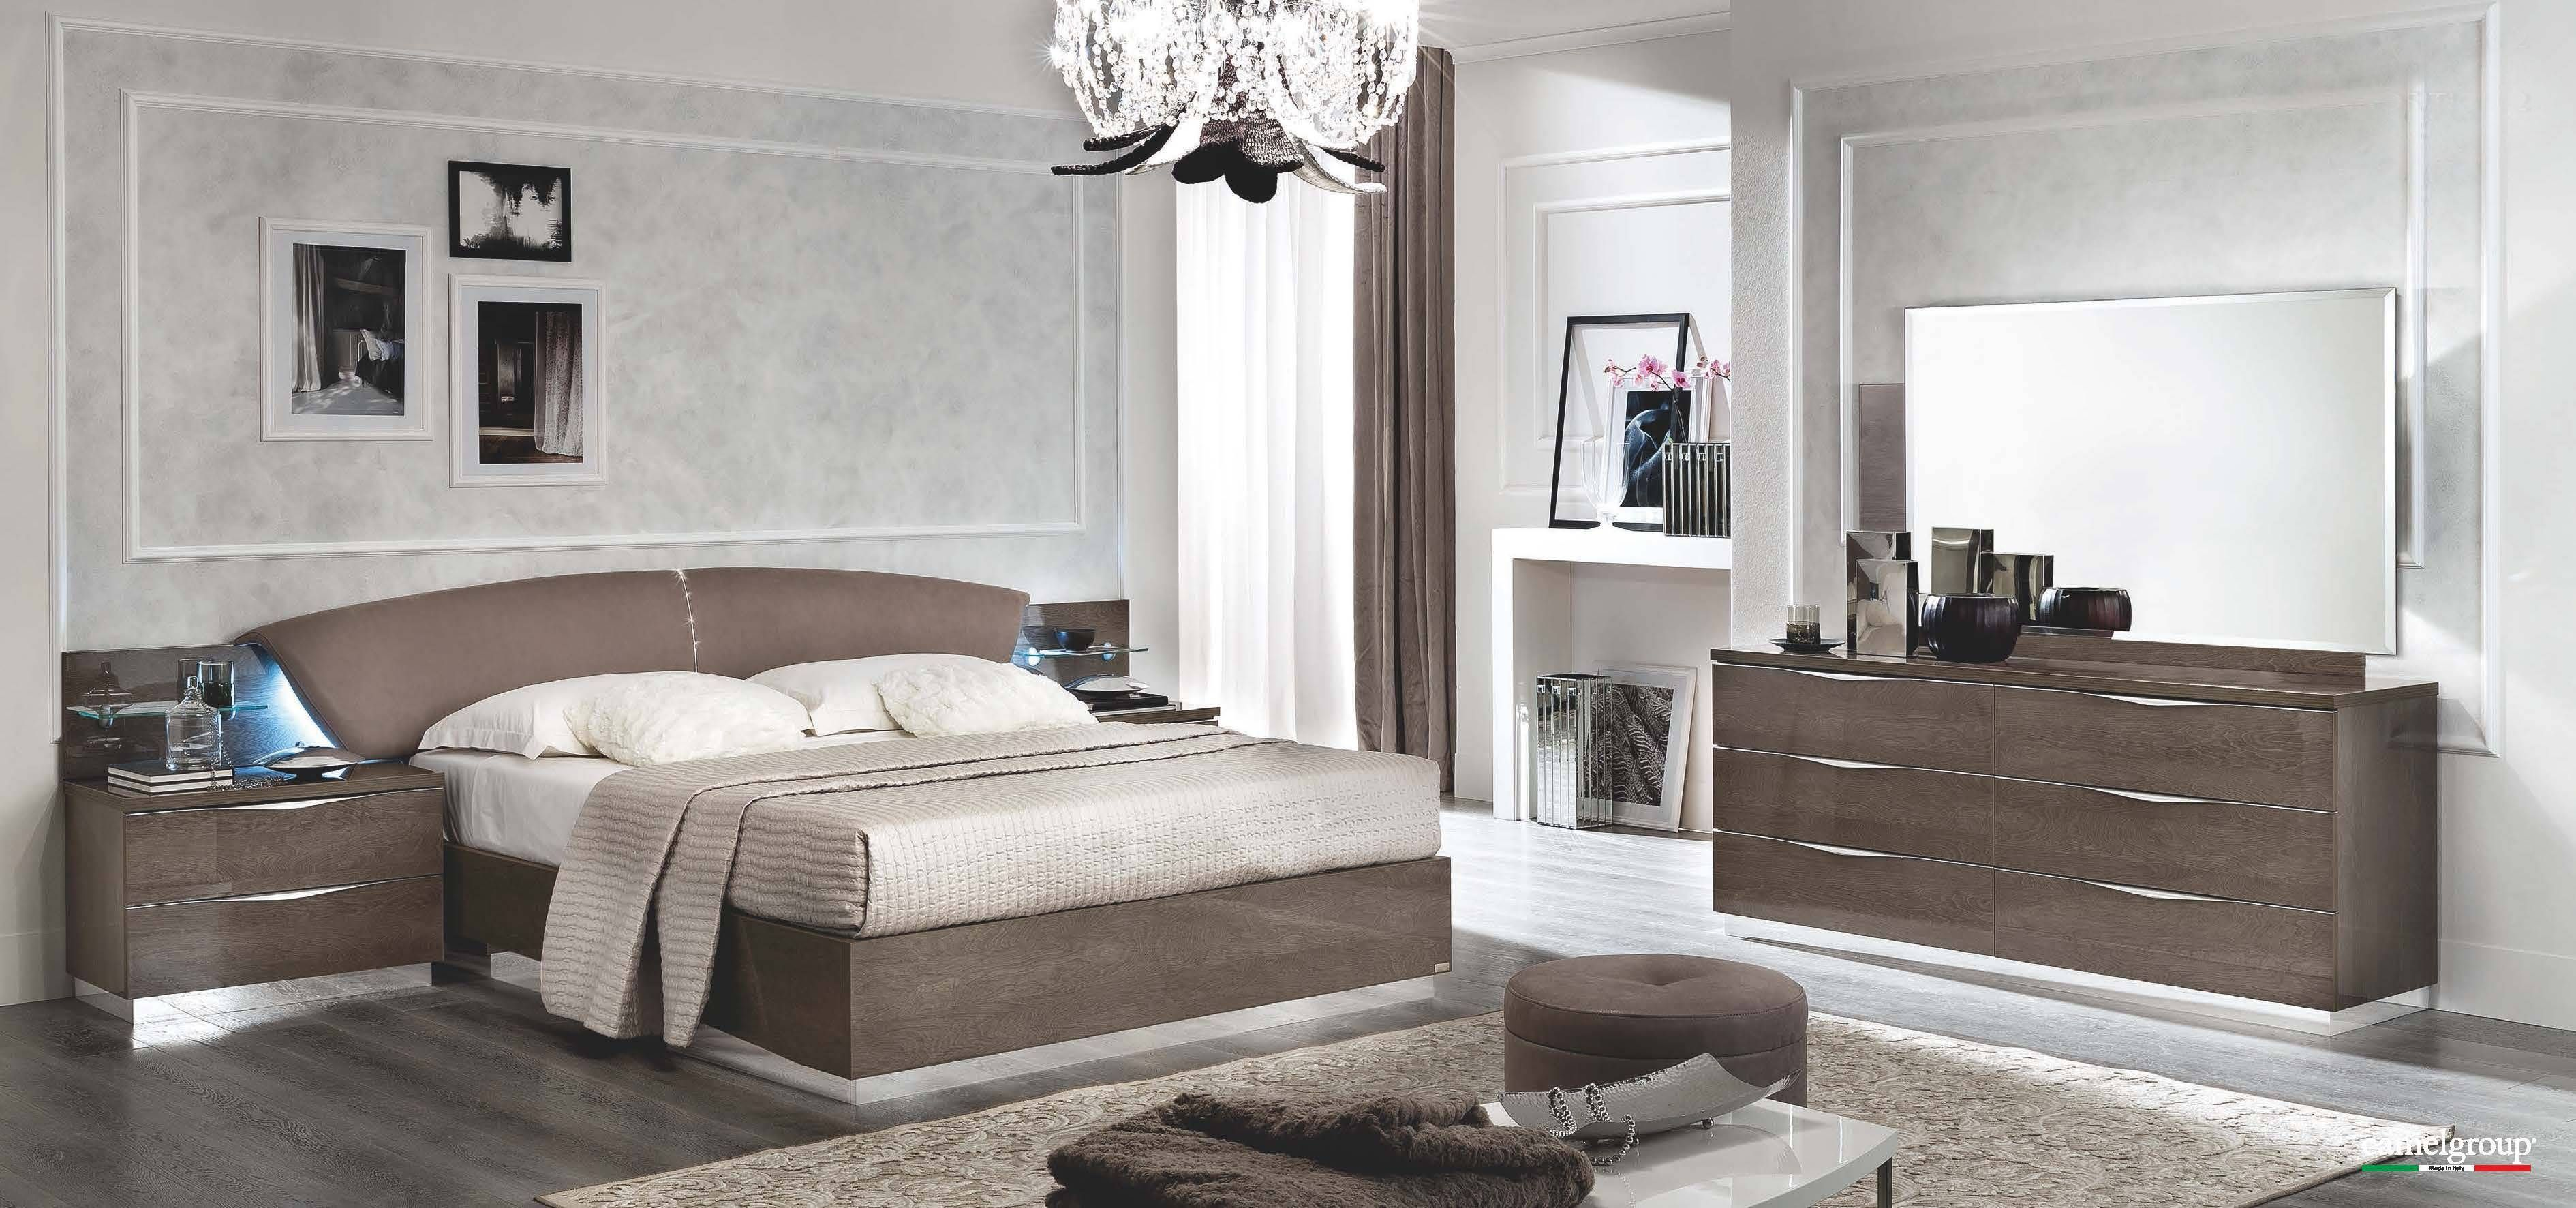 Best Made In Italy Quality Design Bedroom Furniture Italian 640 x 480